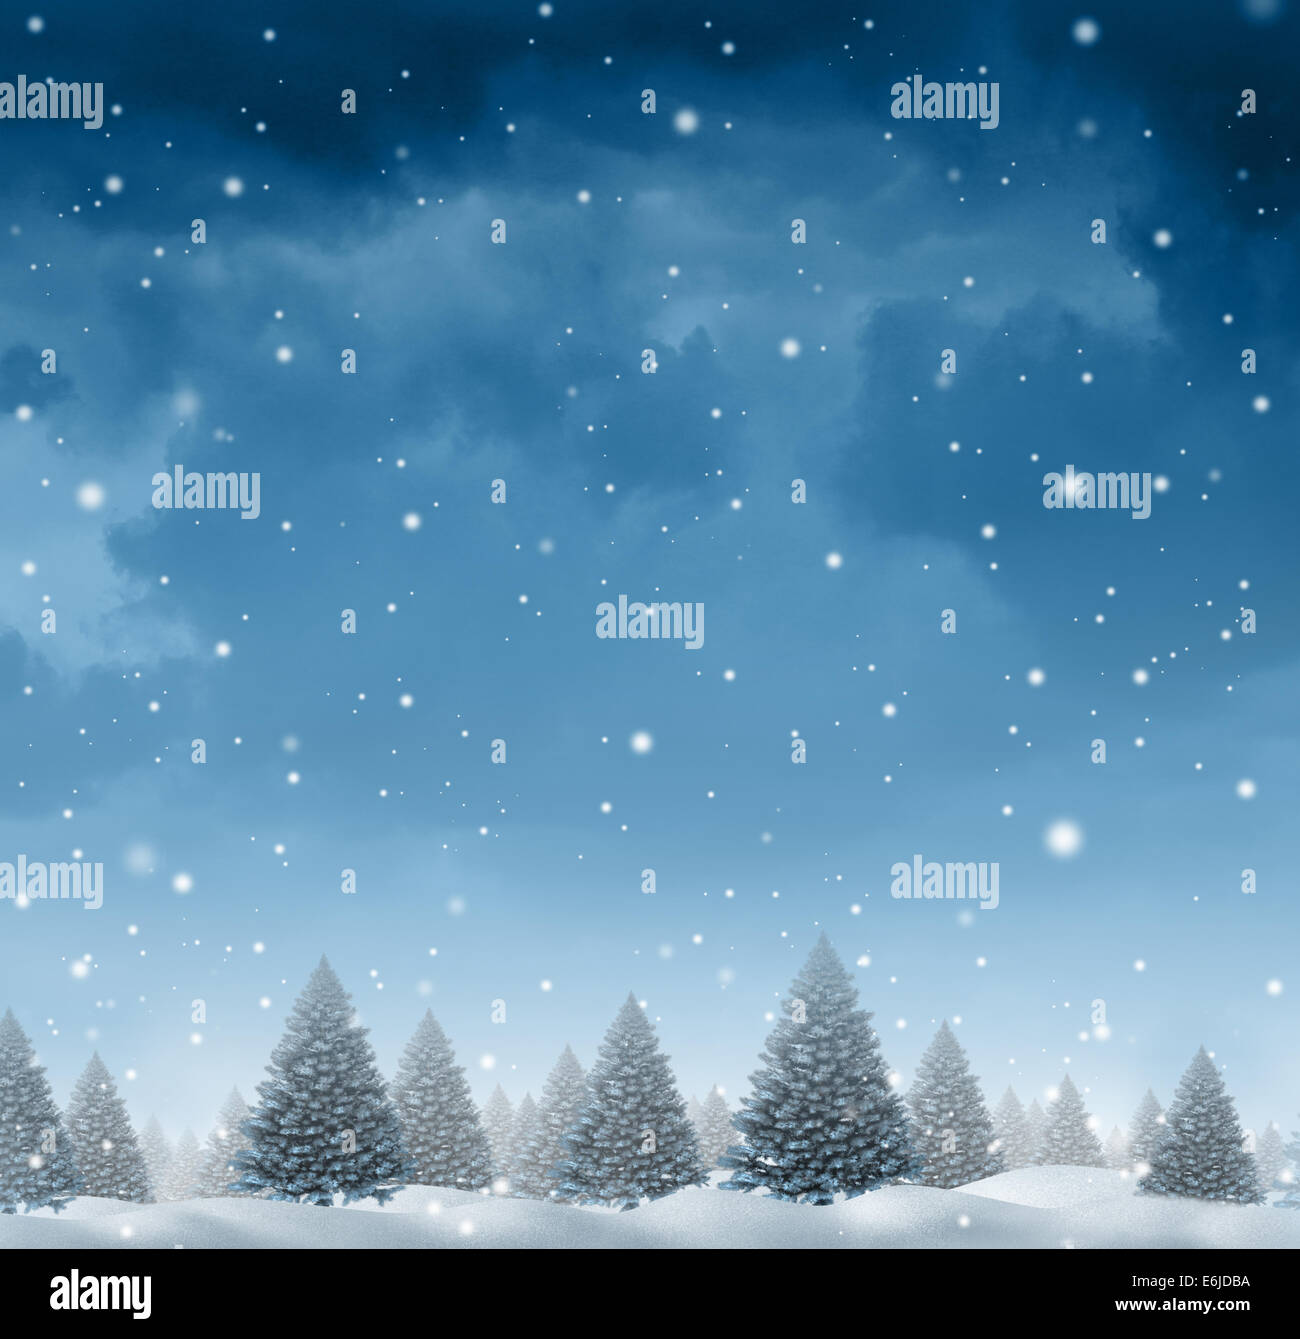 Winter snow background concept with a cold blue forest of pine trees on a snowing holiday night sky as a design - Stock Image